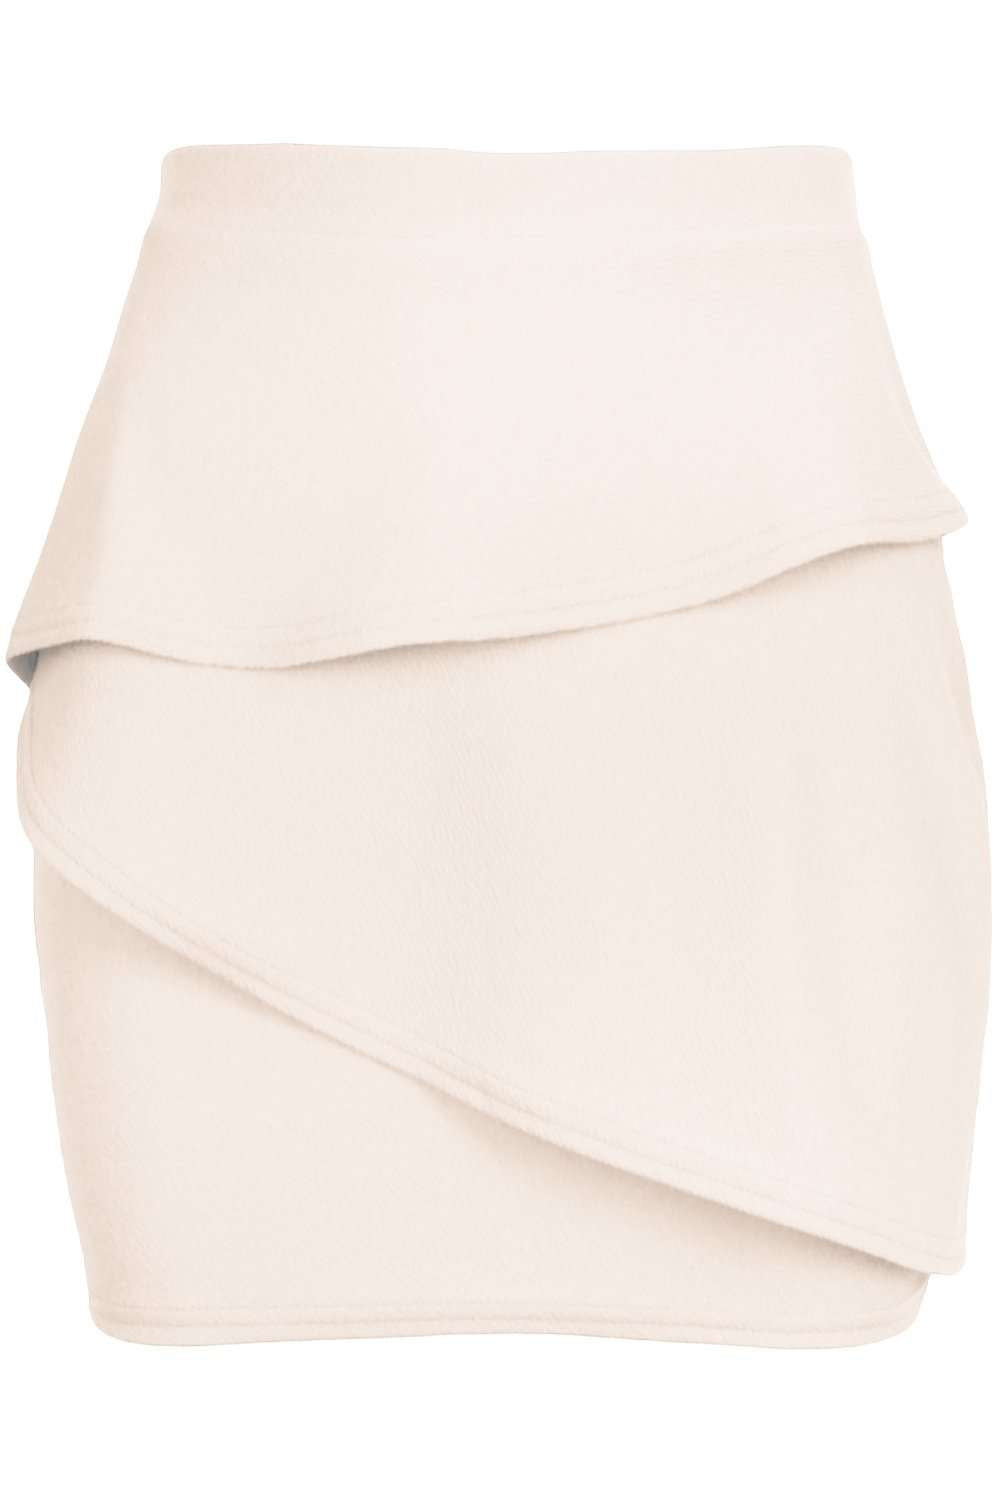 Marley High Waisted Tiered Frill Mini Skirt - bejealous-com